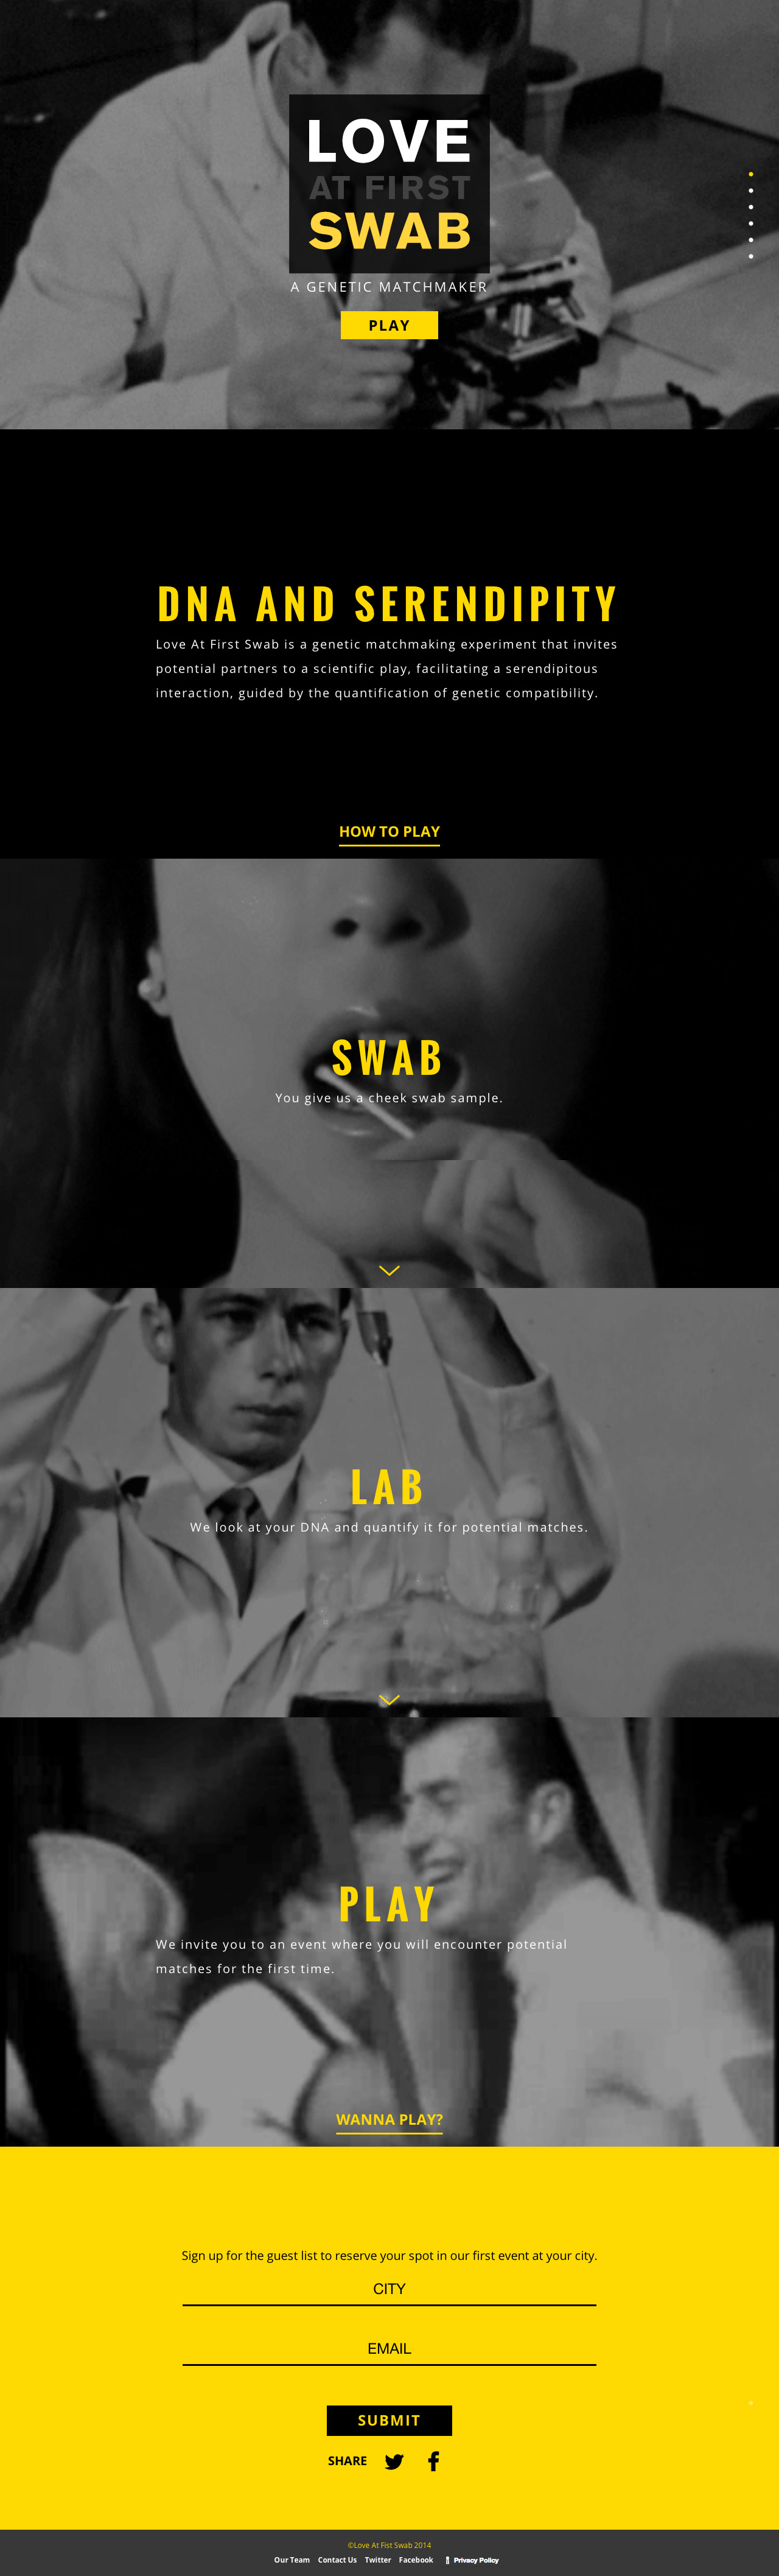 Love At First Swab Website Screenshot